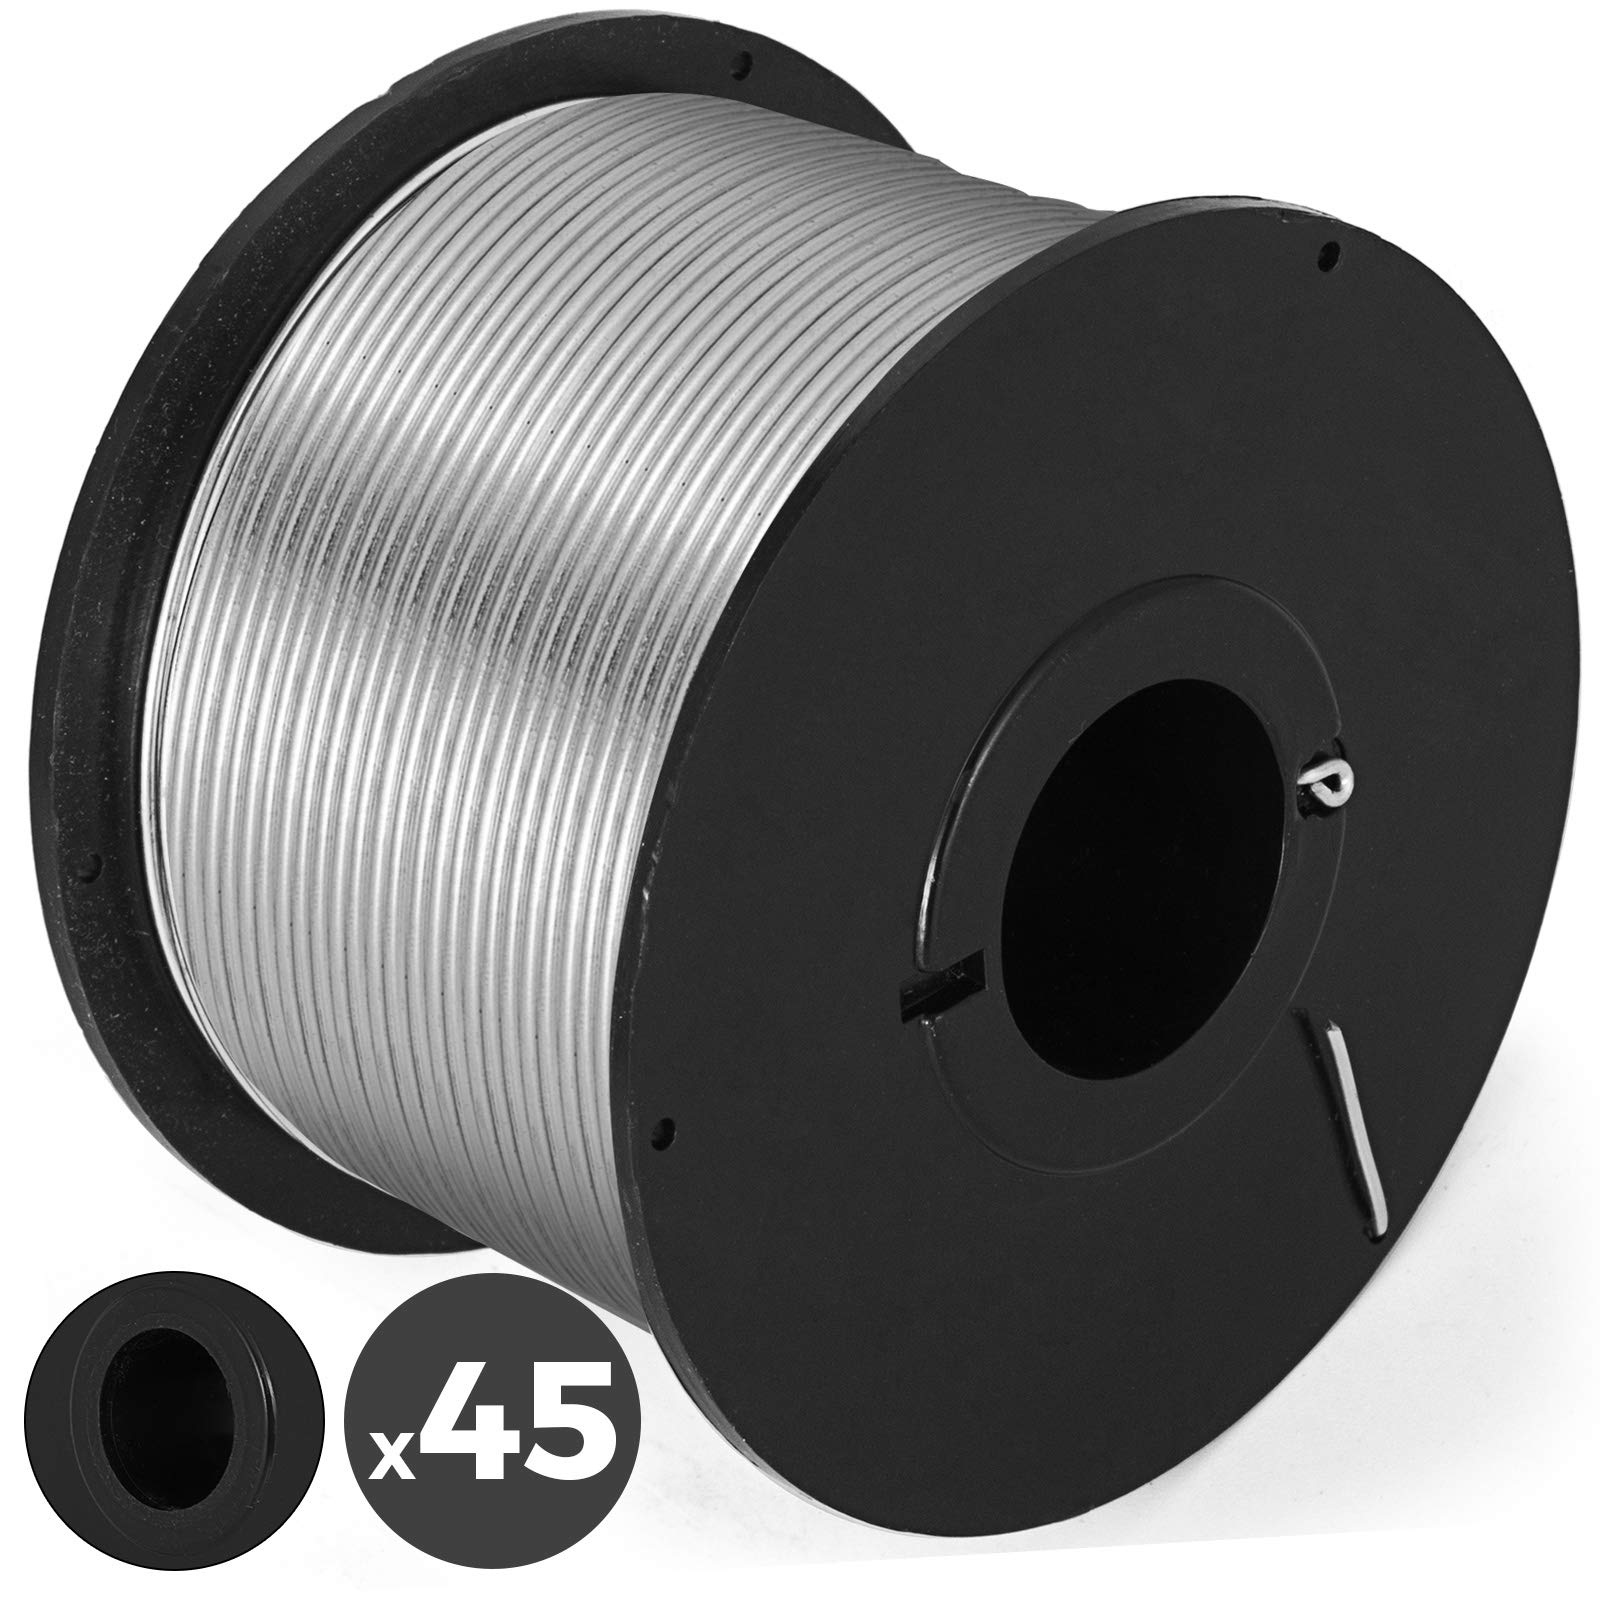 Mophorn 45 Rolls Rebar Tie Wire Coil For Automatic Rebar Tying Machine Automatic Steel Bar Rod Tying Tools